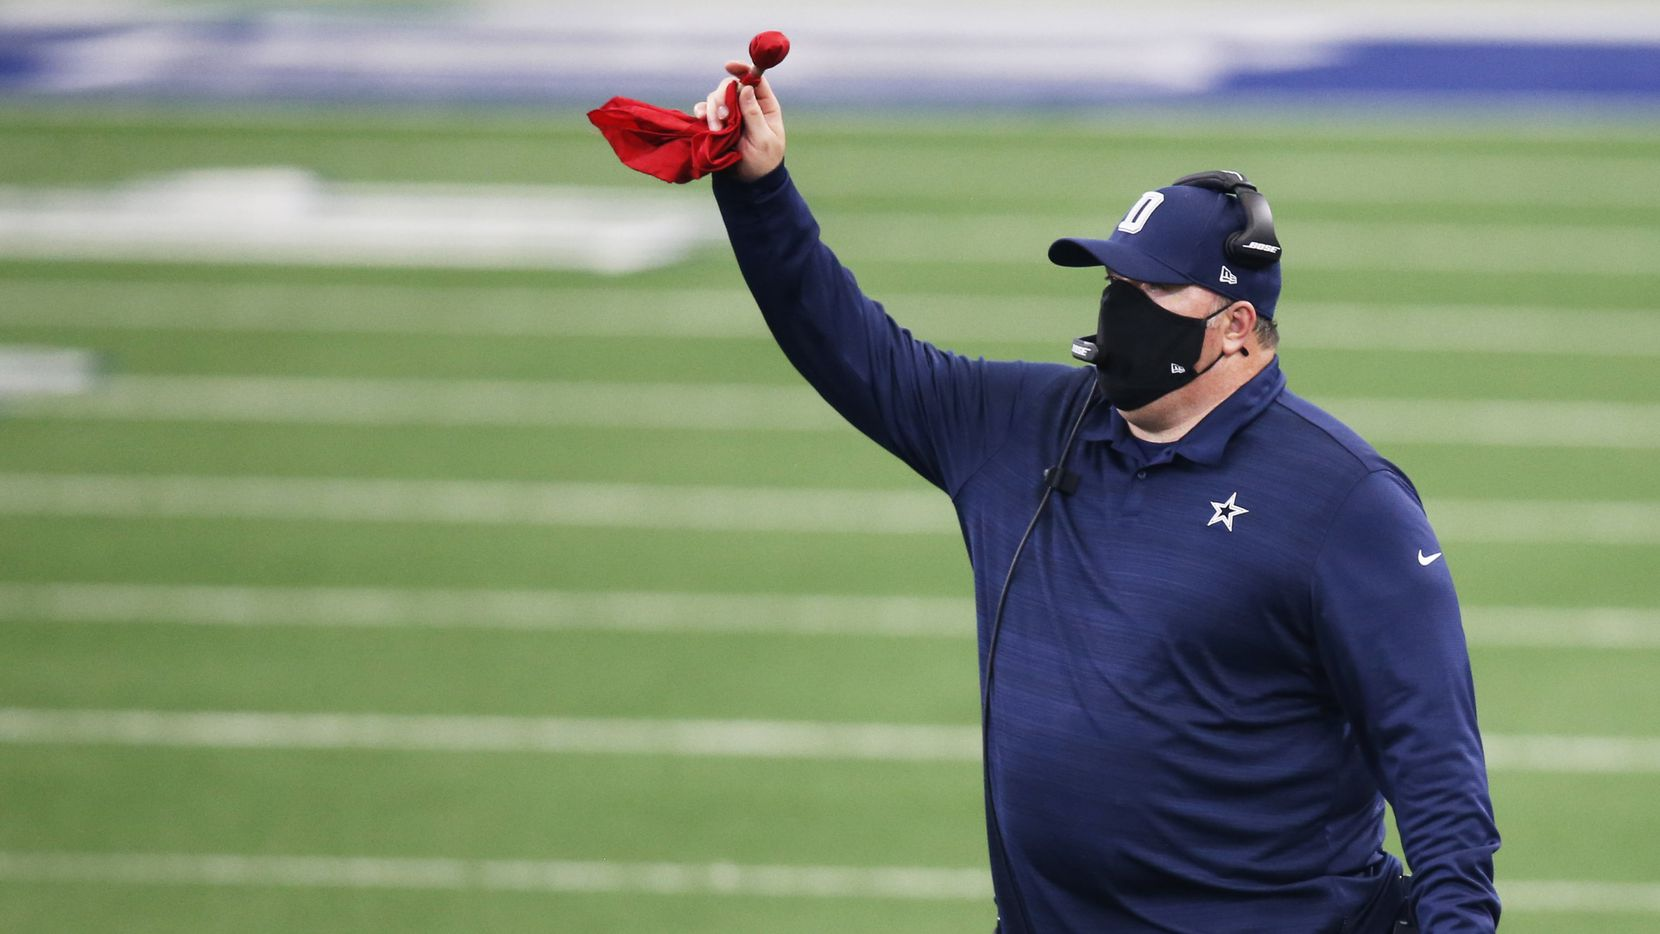 Dallas Cowboys head coach Mike McCarthy challenges the spot of the ball on a run play in a game against the Atlanta Falcons in the second half of play at AT&T Stadium in Arlington, Texas on Sunday, September 20, 2020. Dallas Cowboys defeated the Atlanta Falcons 40-39.